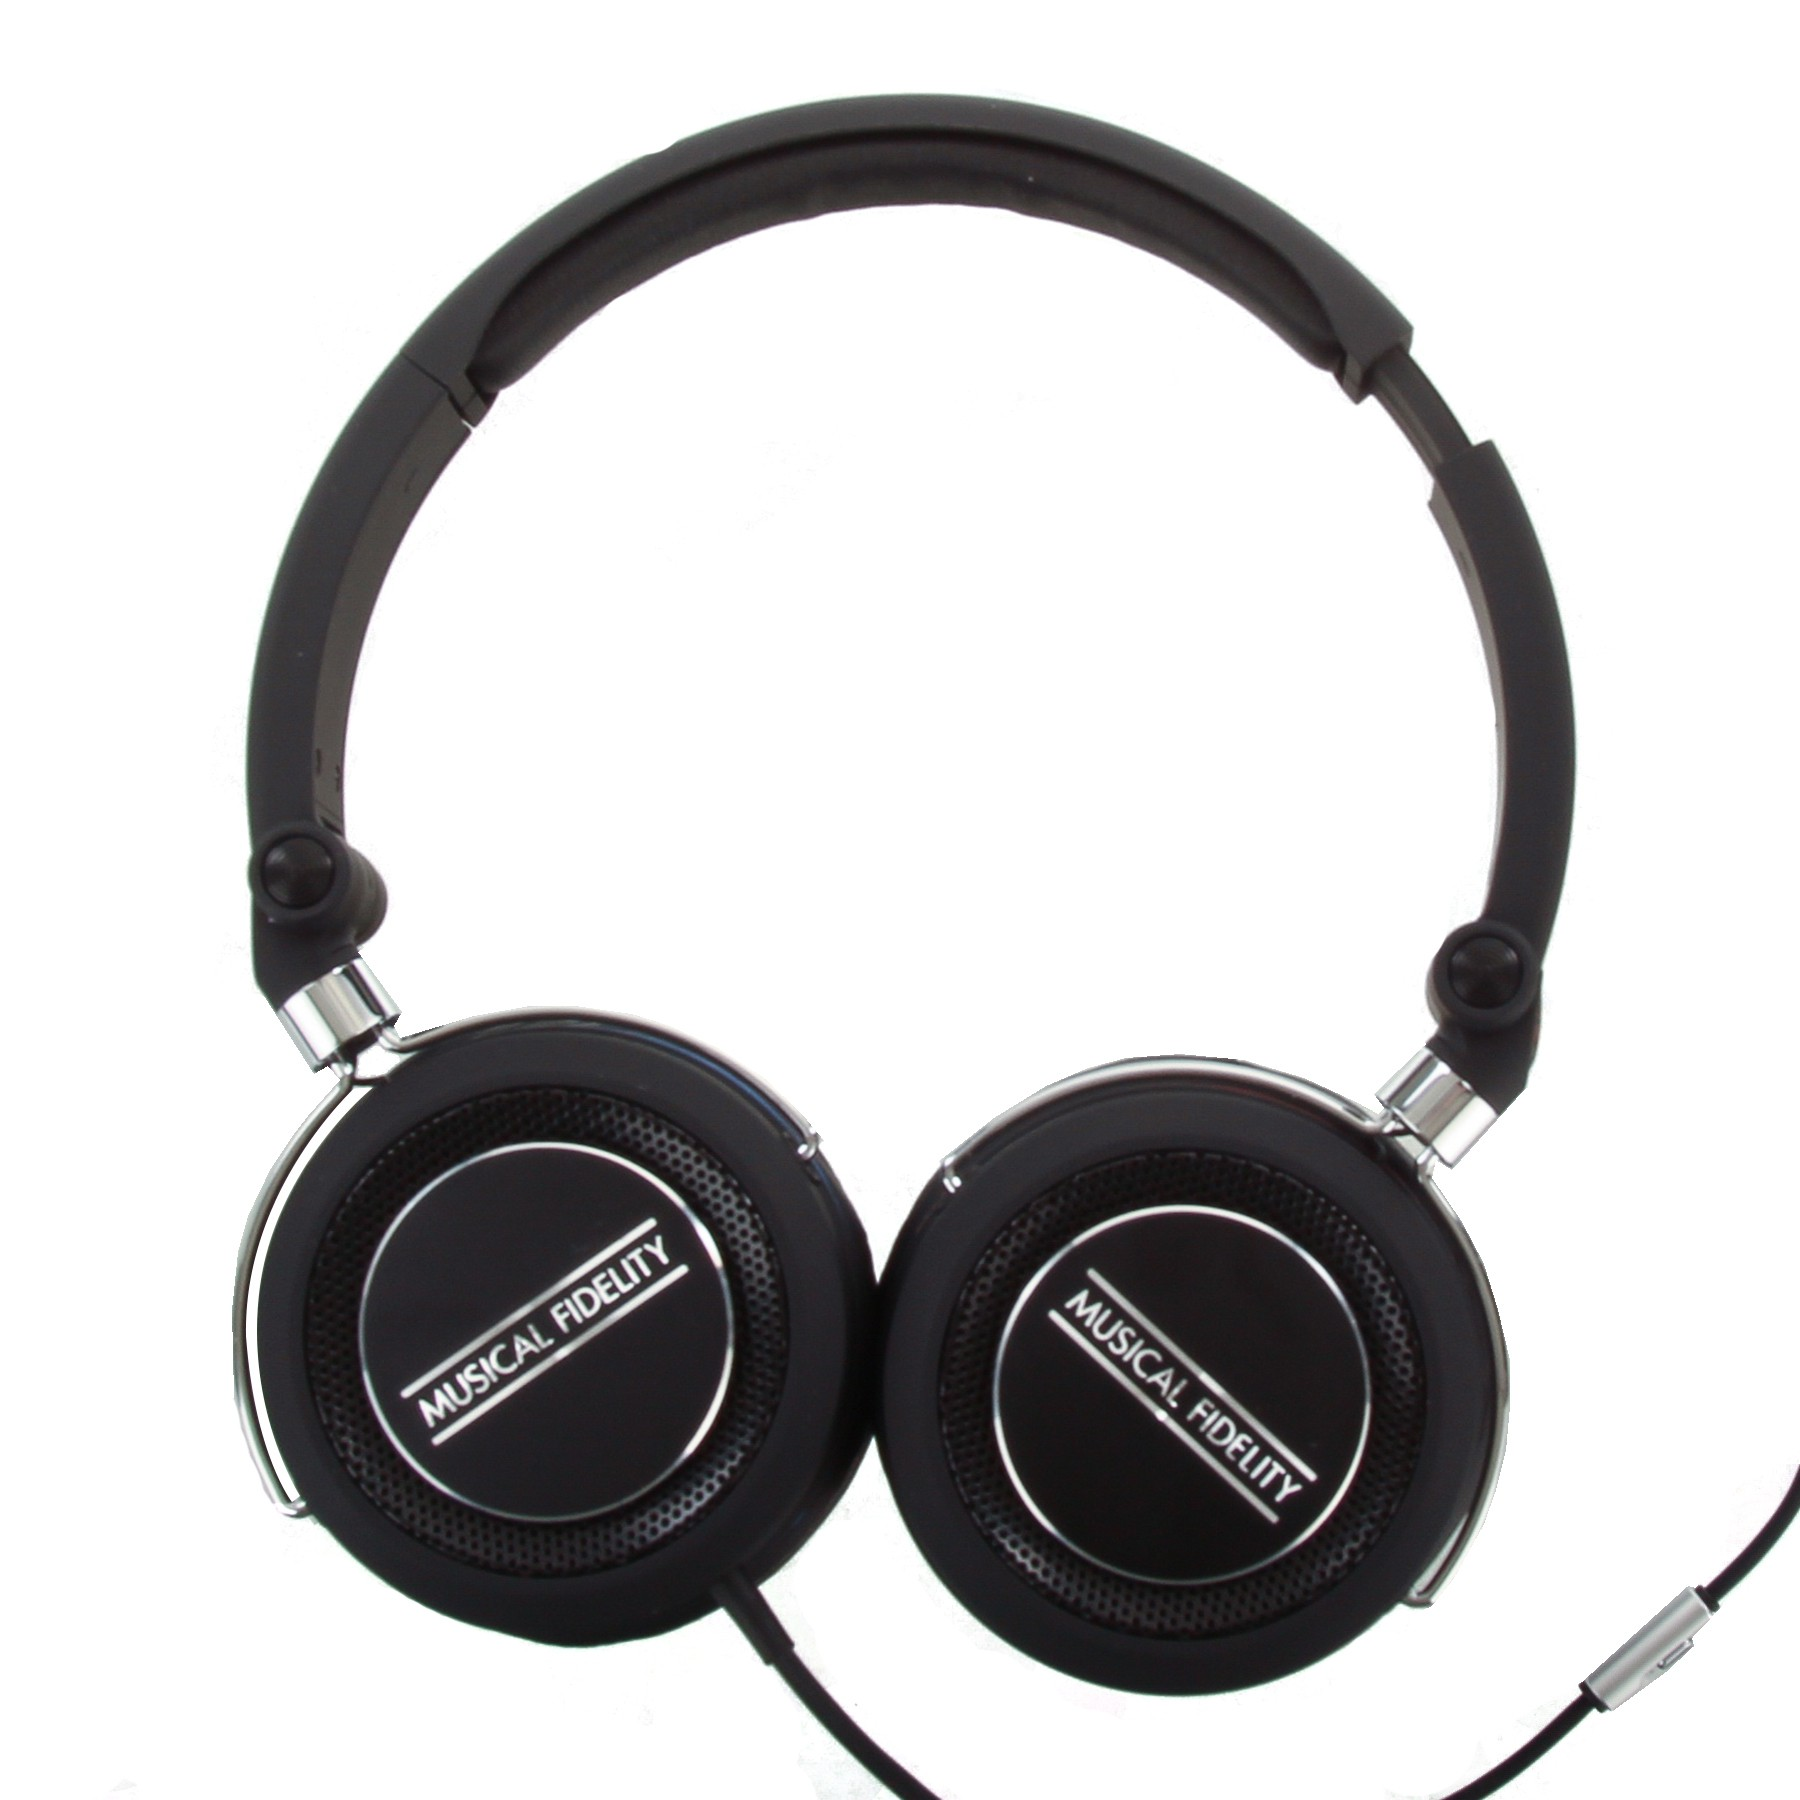 MF-100 High End On-Ear-Kopfhörer  Bild https://cdn03.plentymarkets.com/zsy4vjx32p87/item/images/4890/full/5060183461284-ama-06.JPG